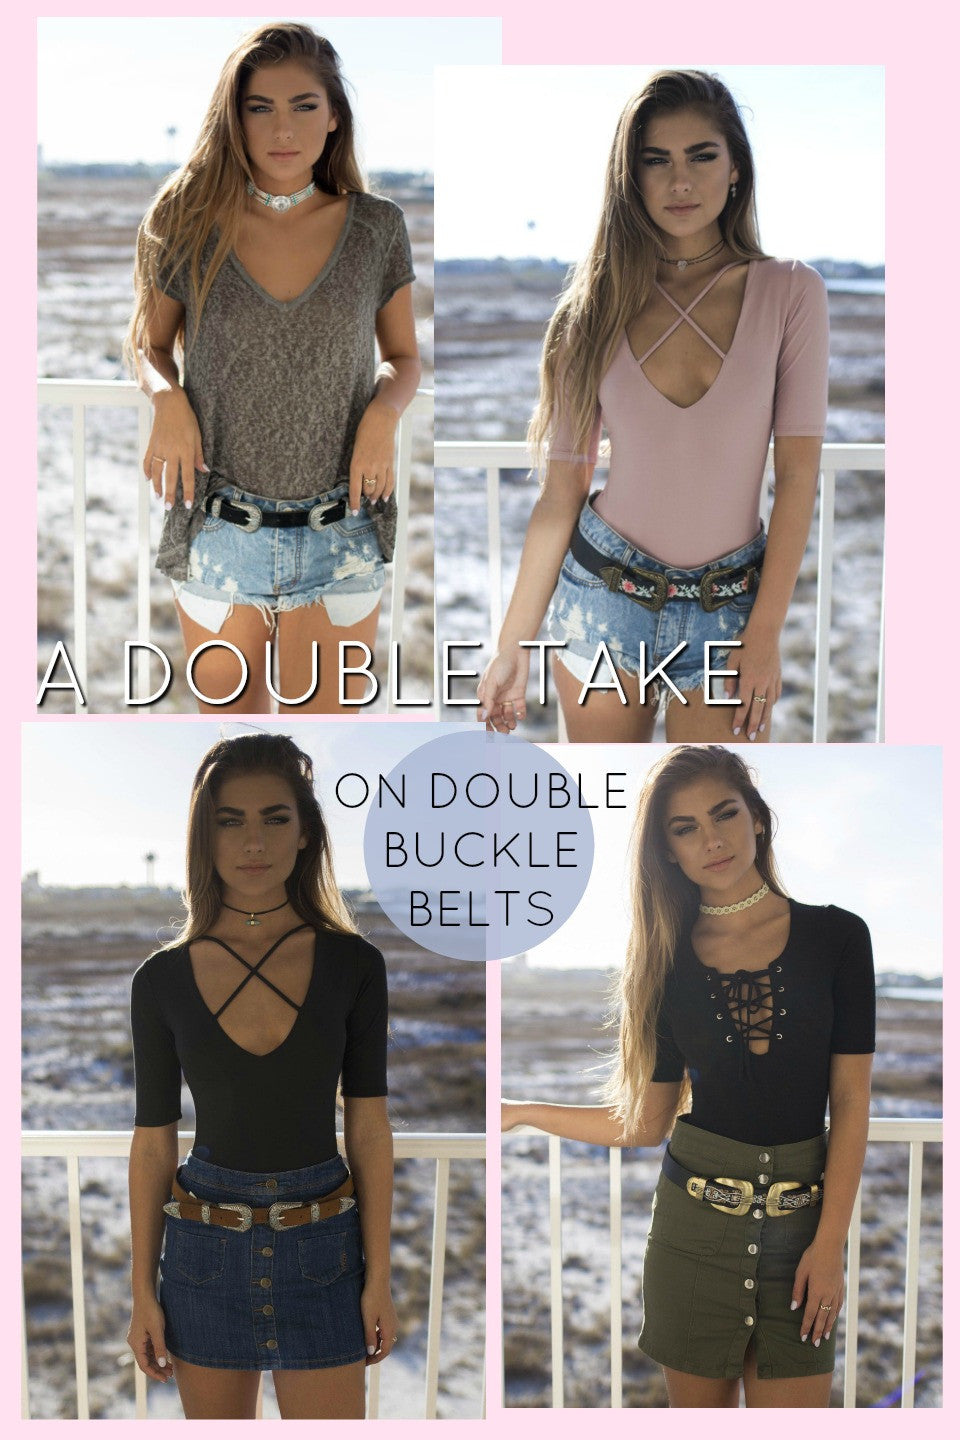 A Double Take On Double Buckle Belts